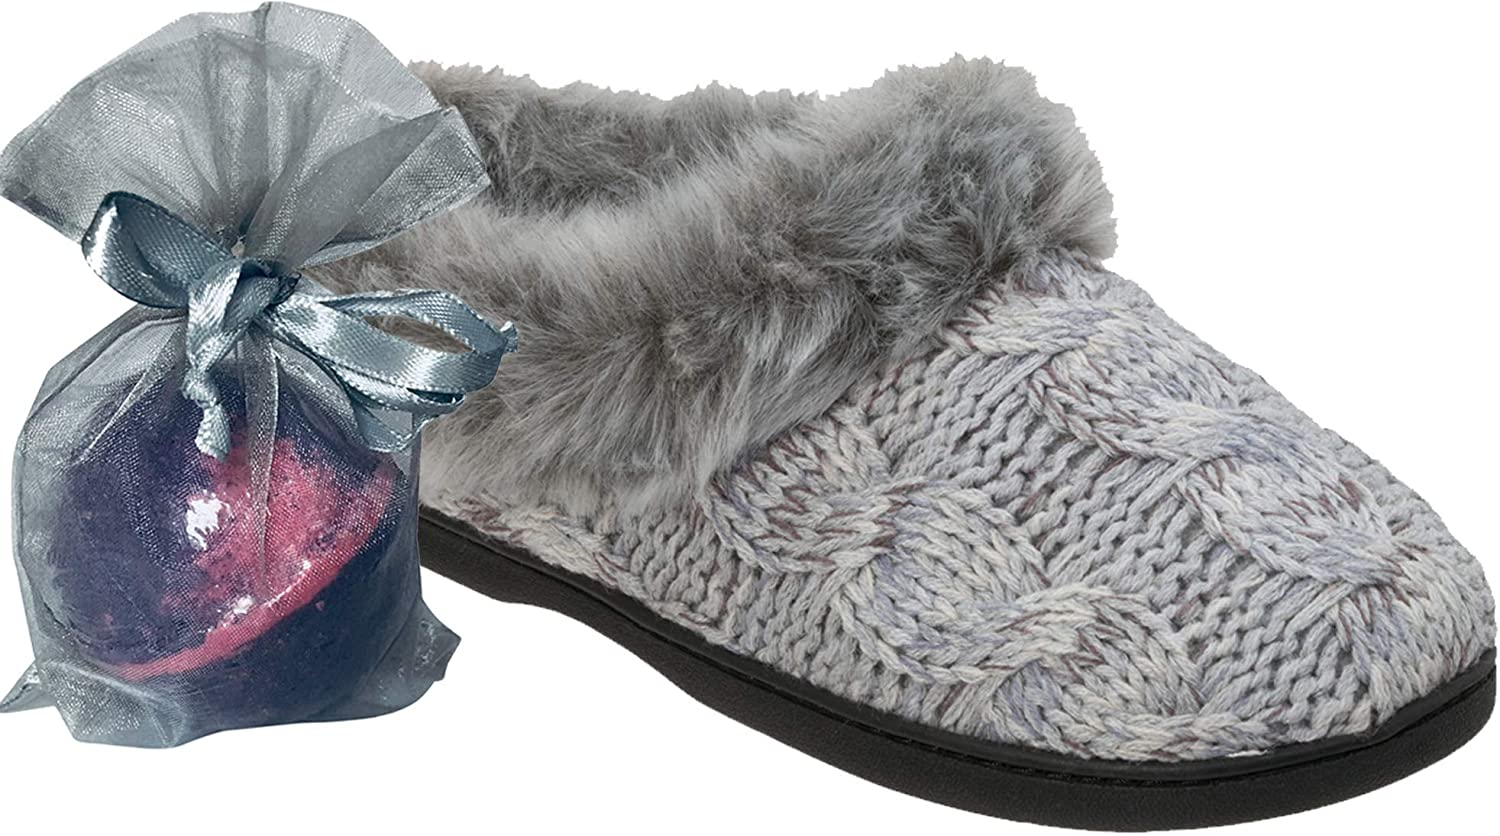 Jennjuli Women's Slippers Space-dye Cable Knit Clog Slip On with Extra-Soft Memory Foam Cushioning & Comfort for Indoors & Out by Dearfoams